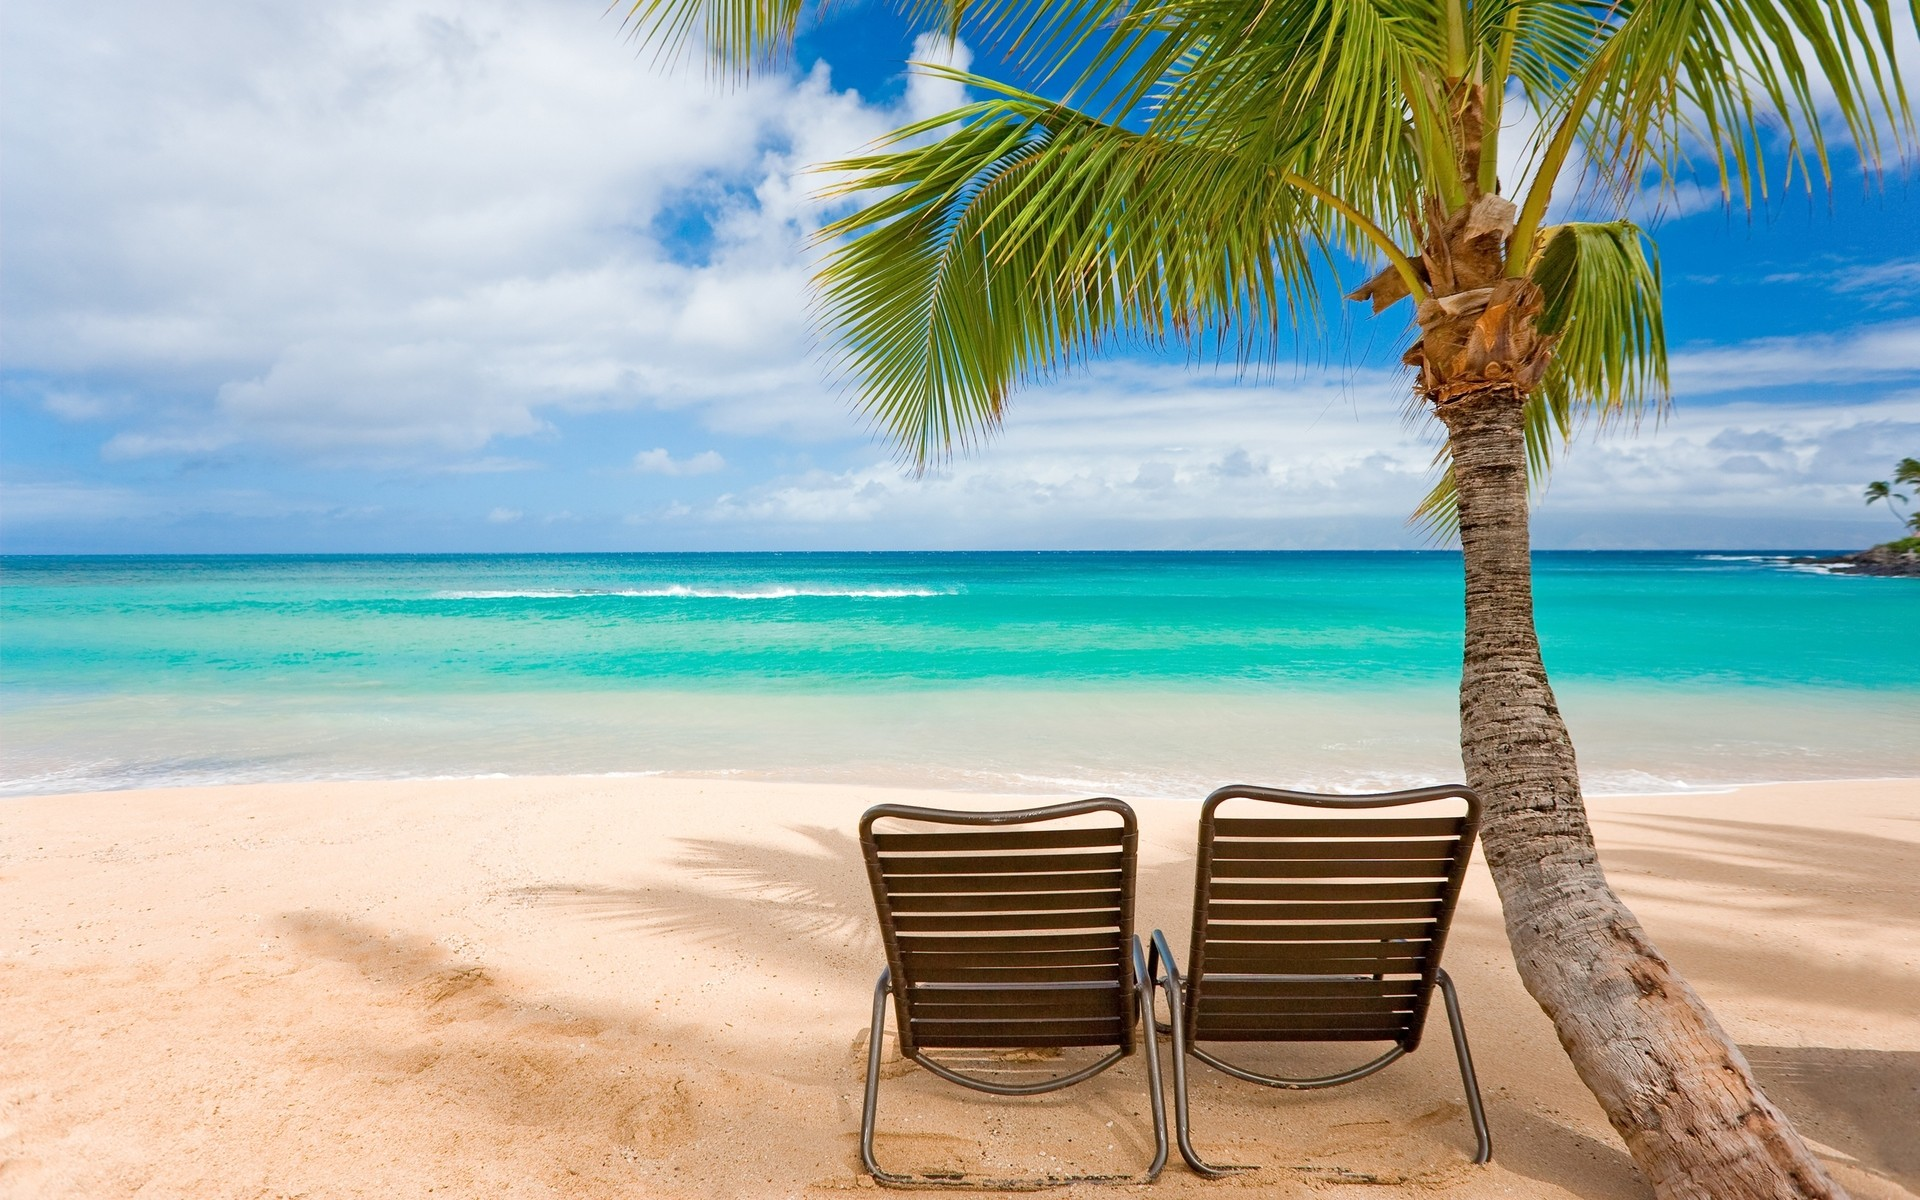 download tropical island wallpaper which is under the beach wallpapers .